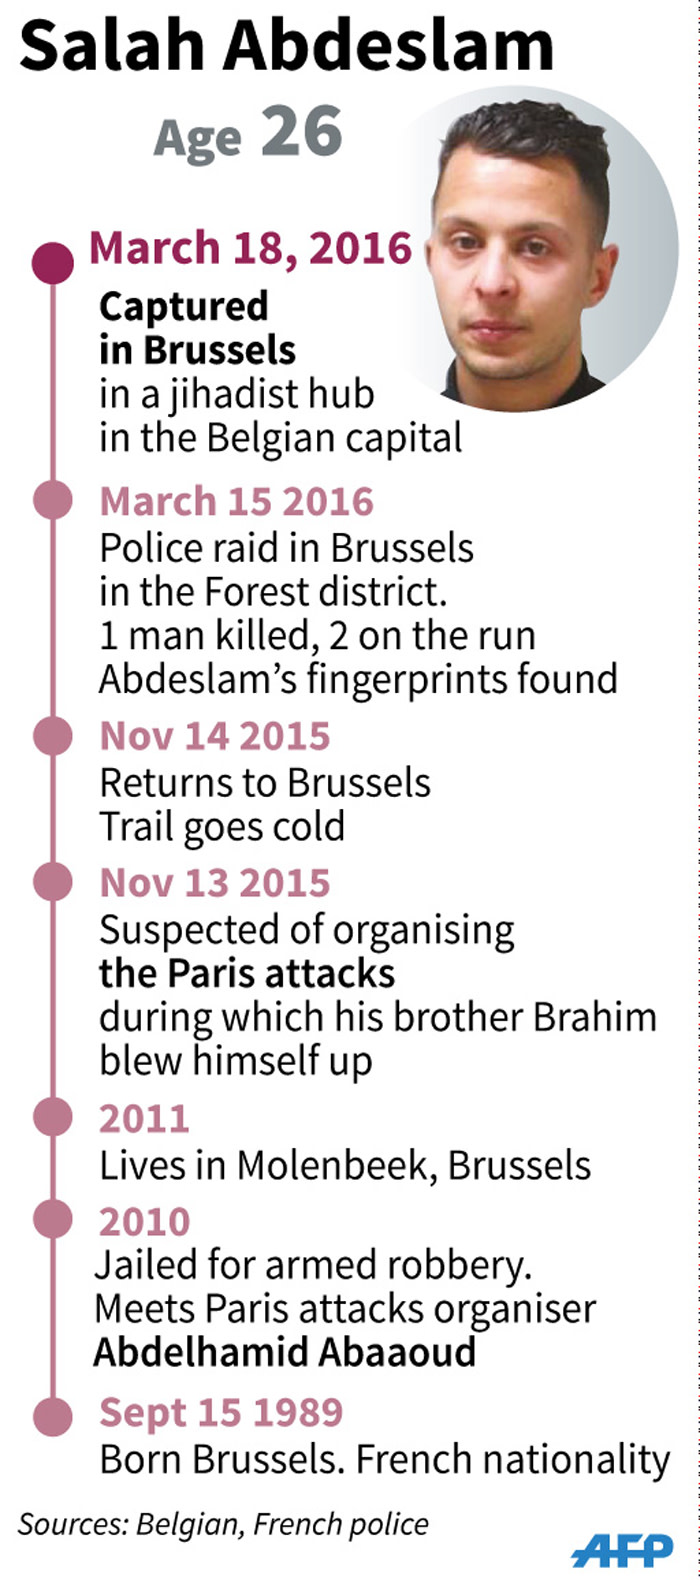 Salah Abdeslam, suspected Paris attacks organiser, captured in Brussels.